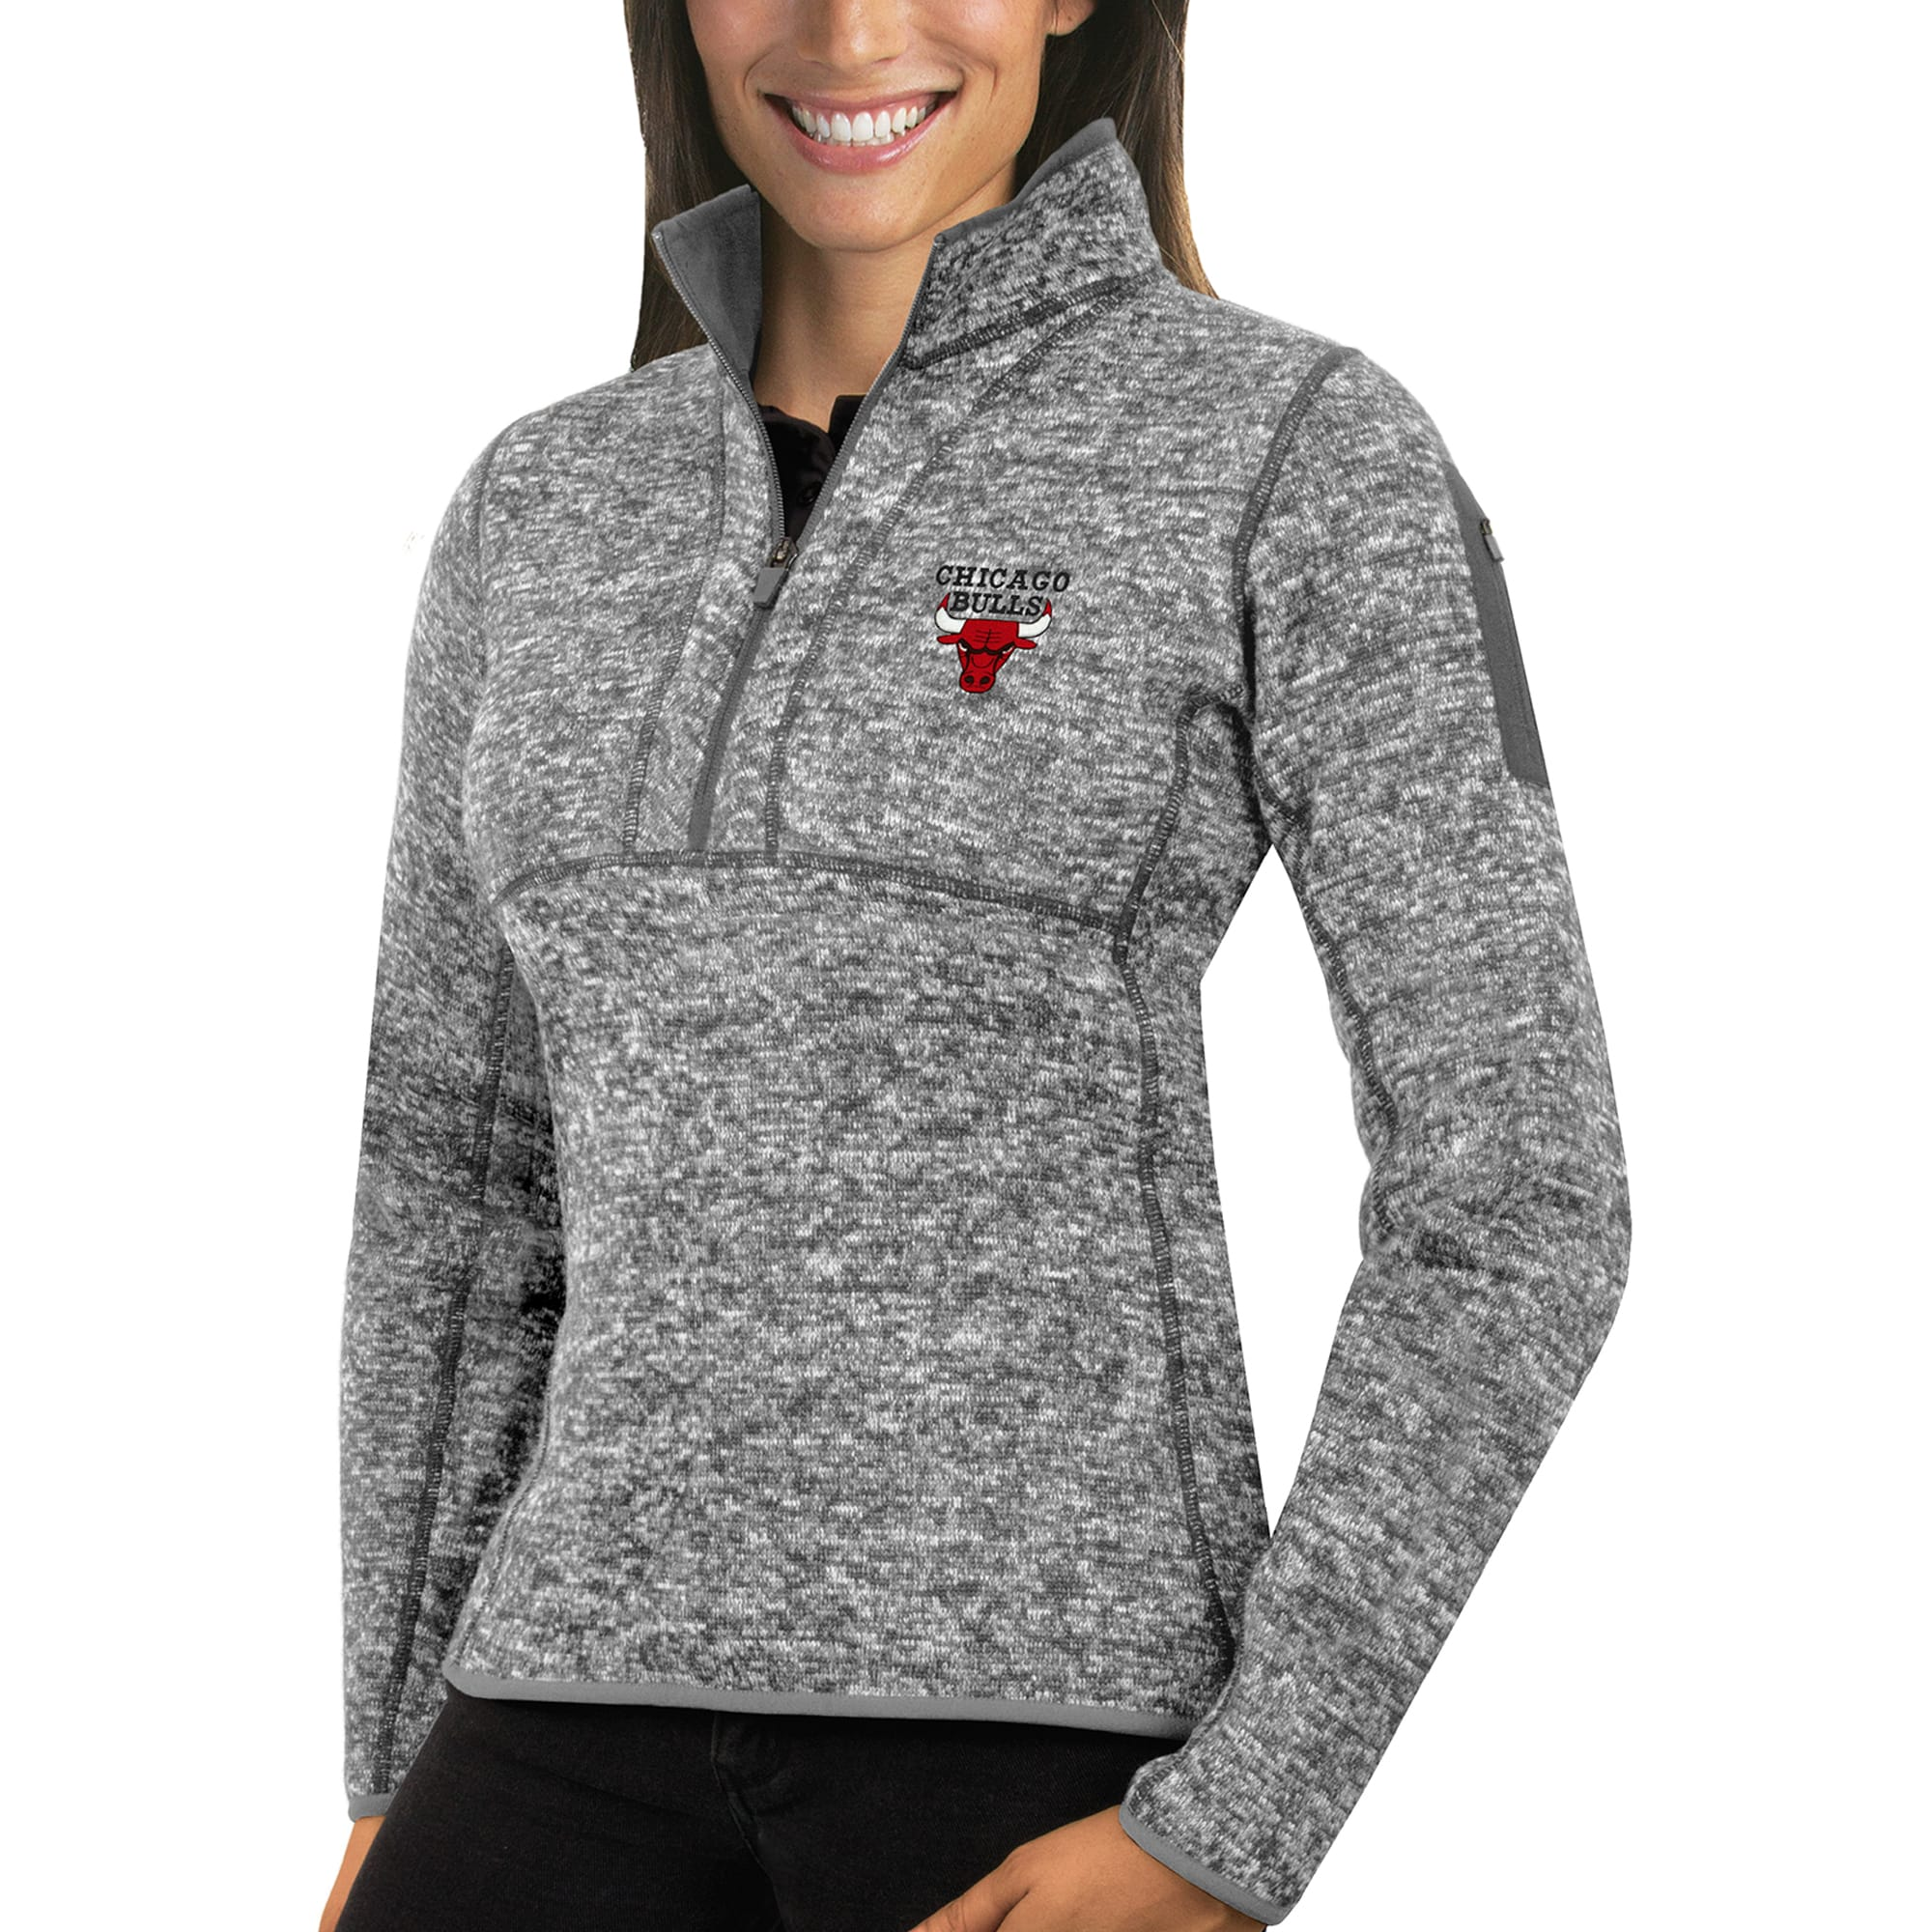 Chicago Bulls Antigua Women's Fortune Half-Zip Pullover Jacket - Heather Gray